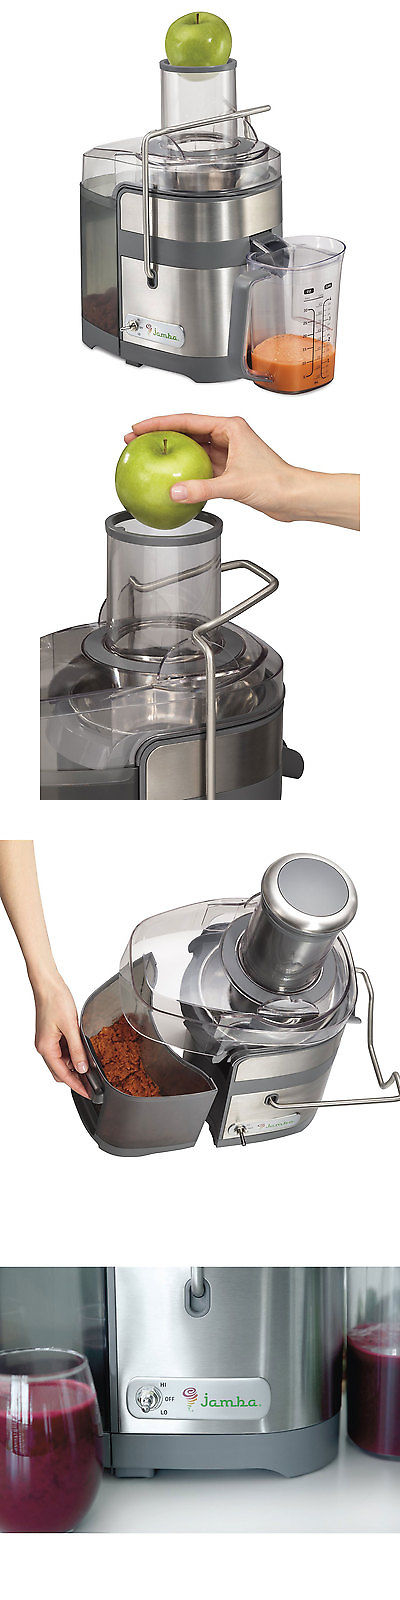 Jamba Appliances 67901 Centrifugal Juice Extractor Gray